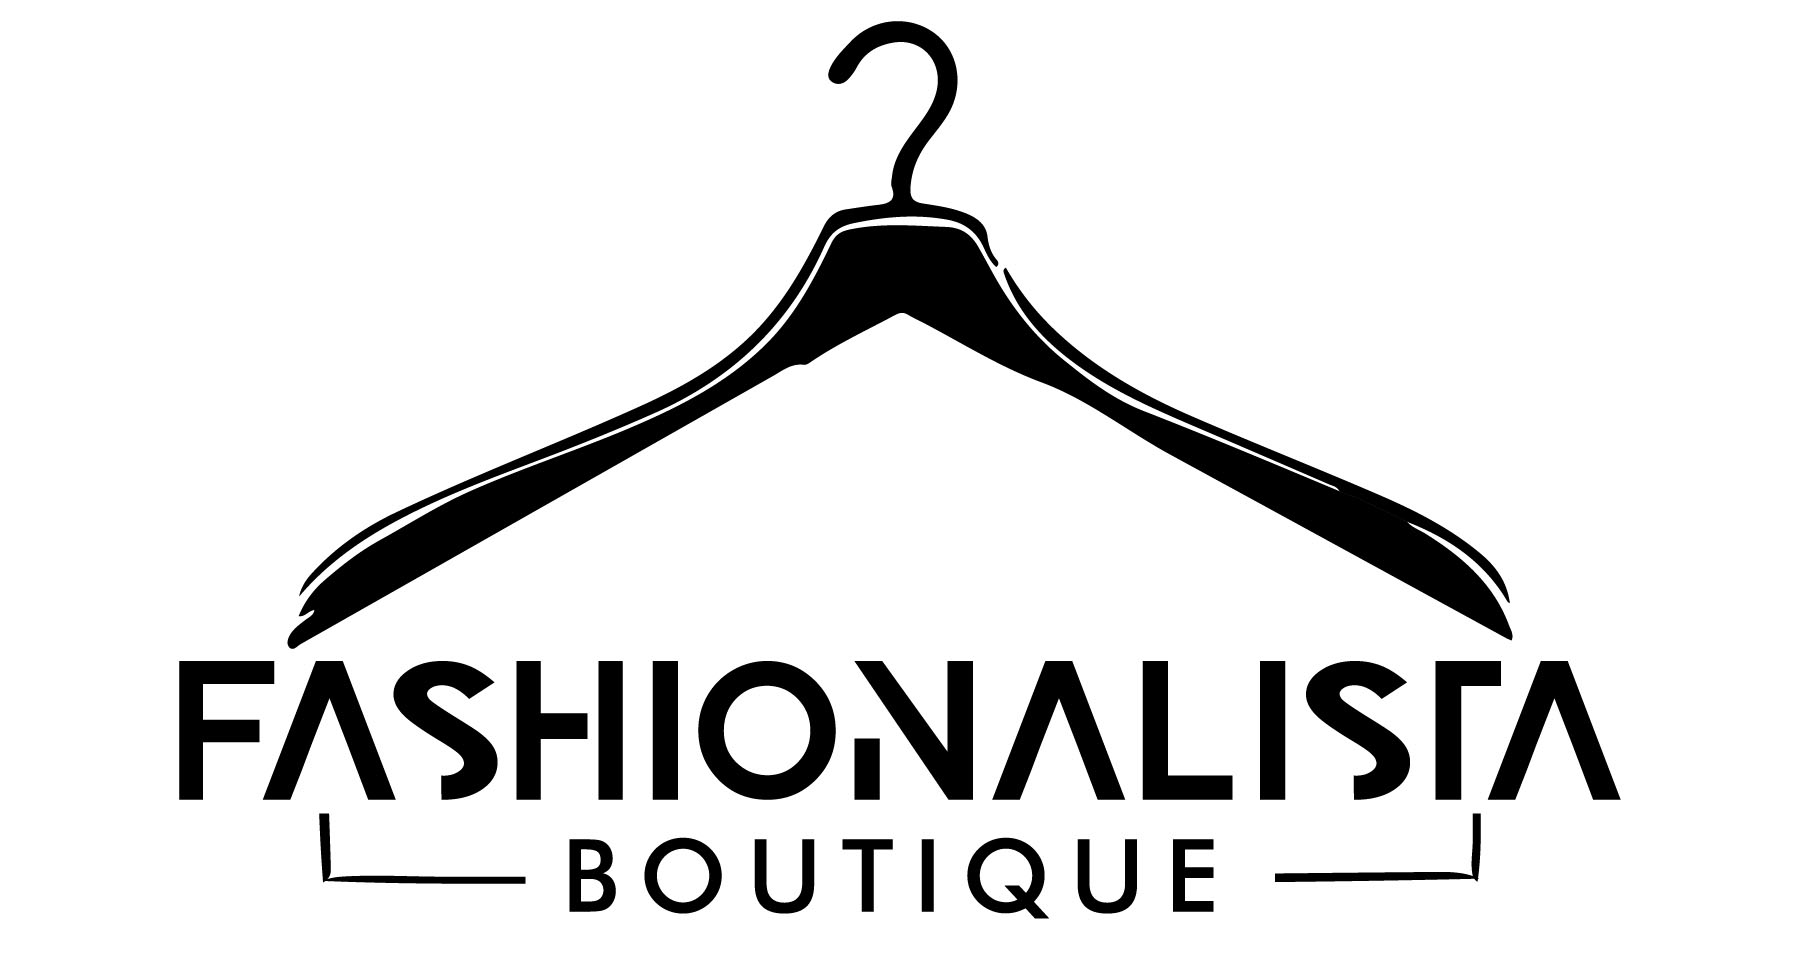 Fashionalista Boutique